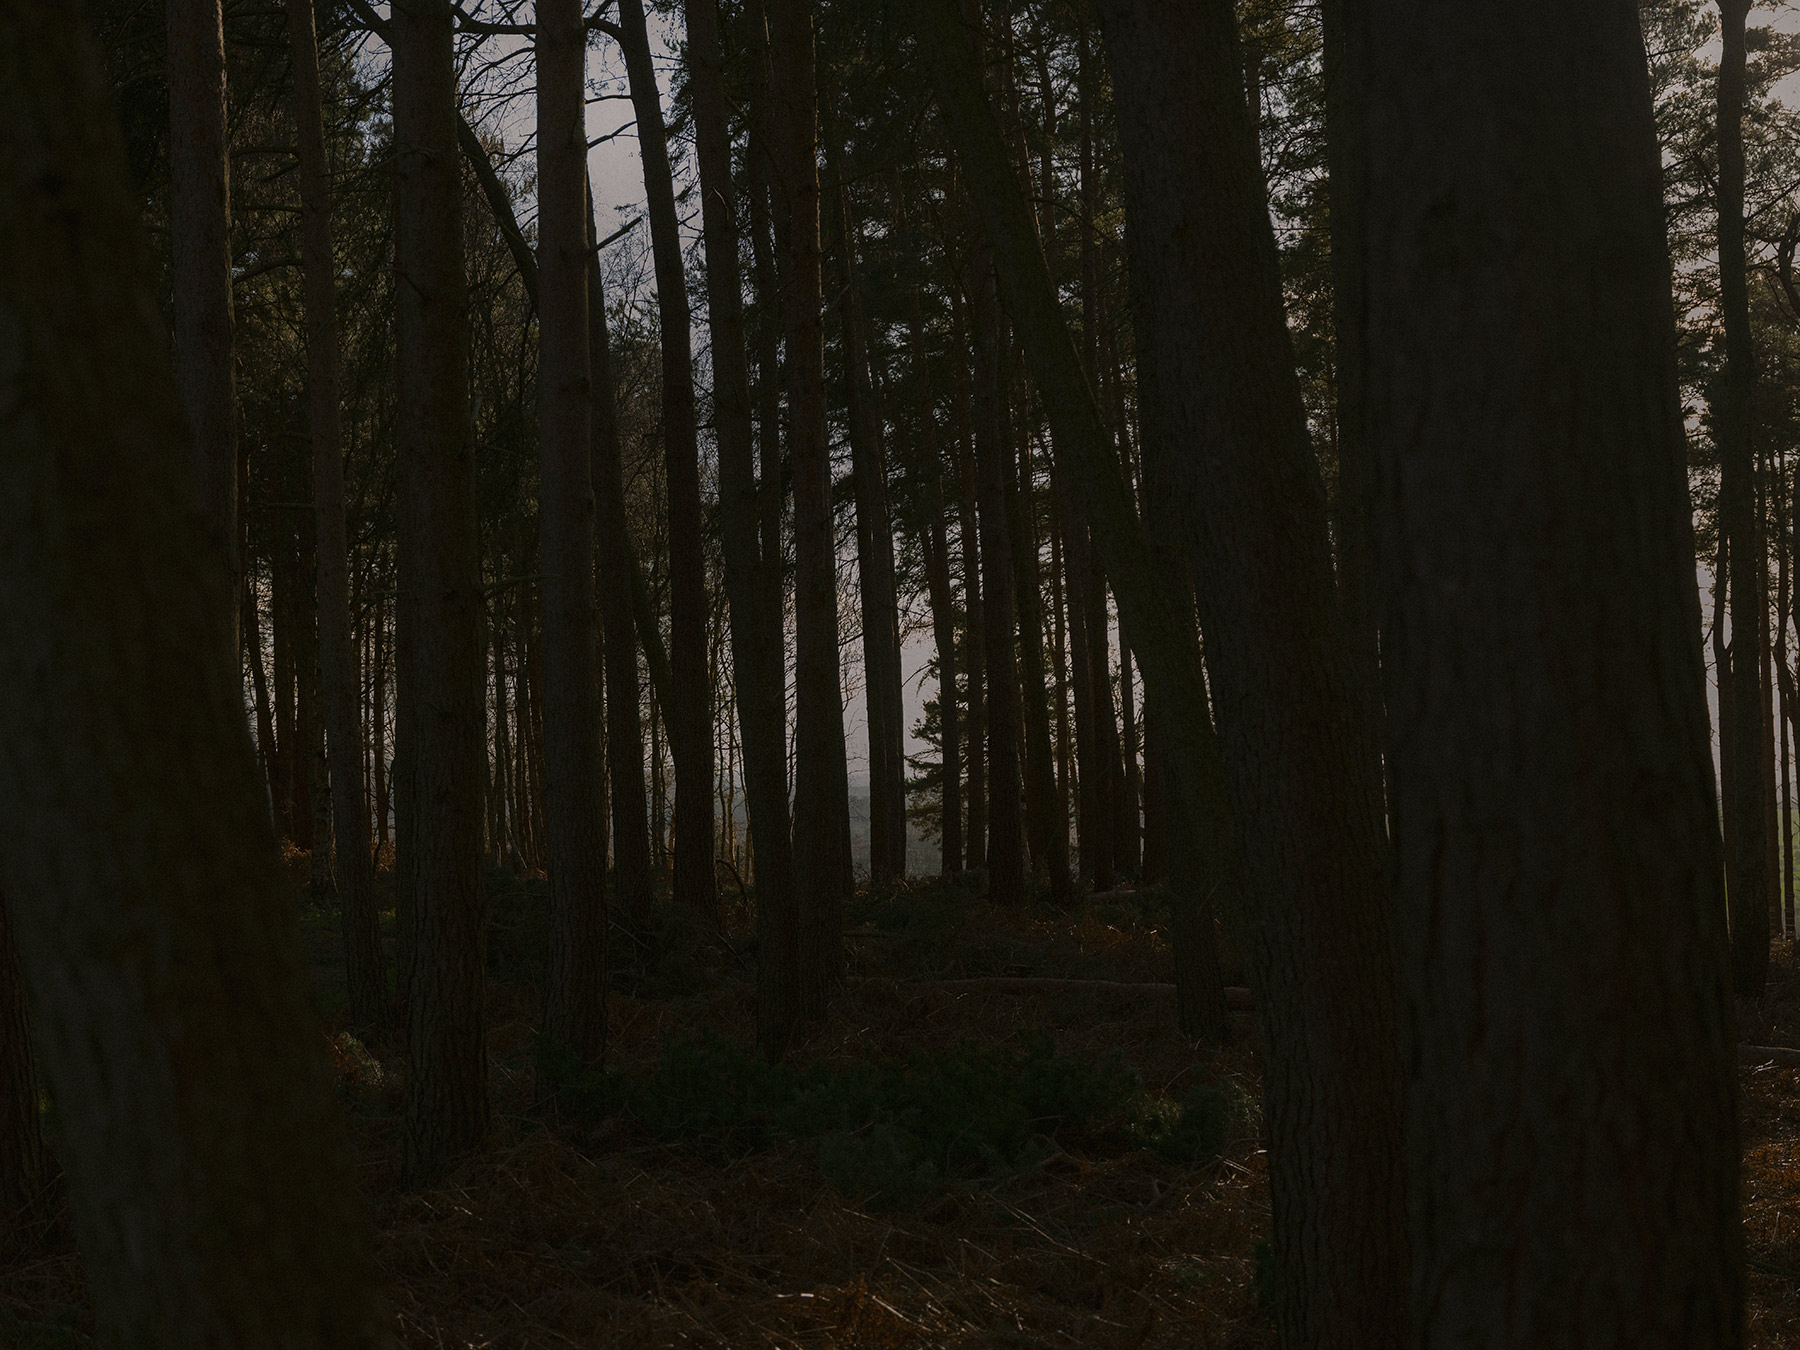 Good Boy Wolf Photographer, filmic landscape,  dark trees in a dark forest